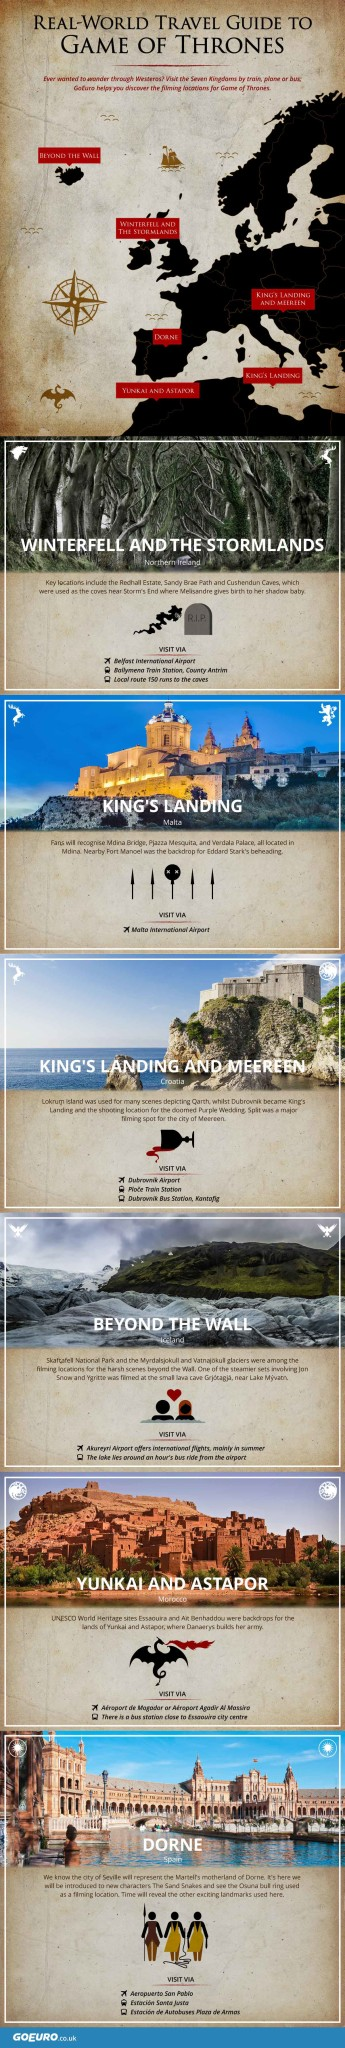 Game of Thrones Boosting Travel Industry at Filming Locations